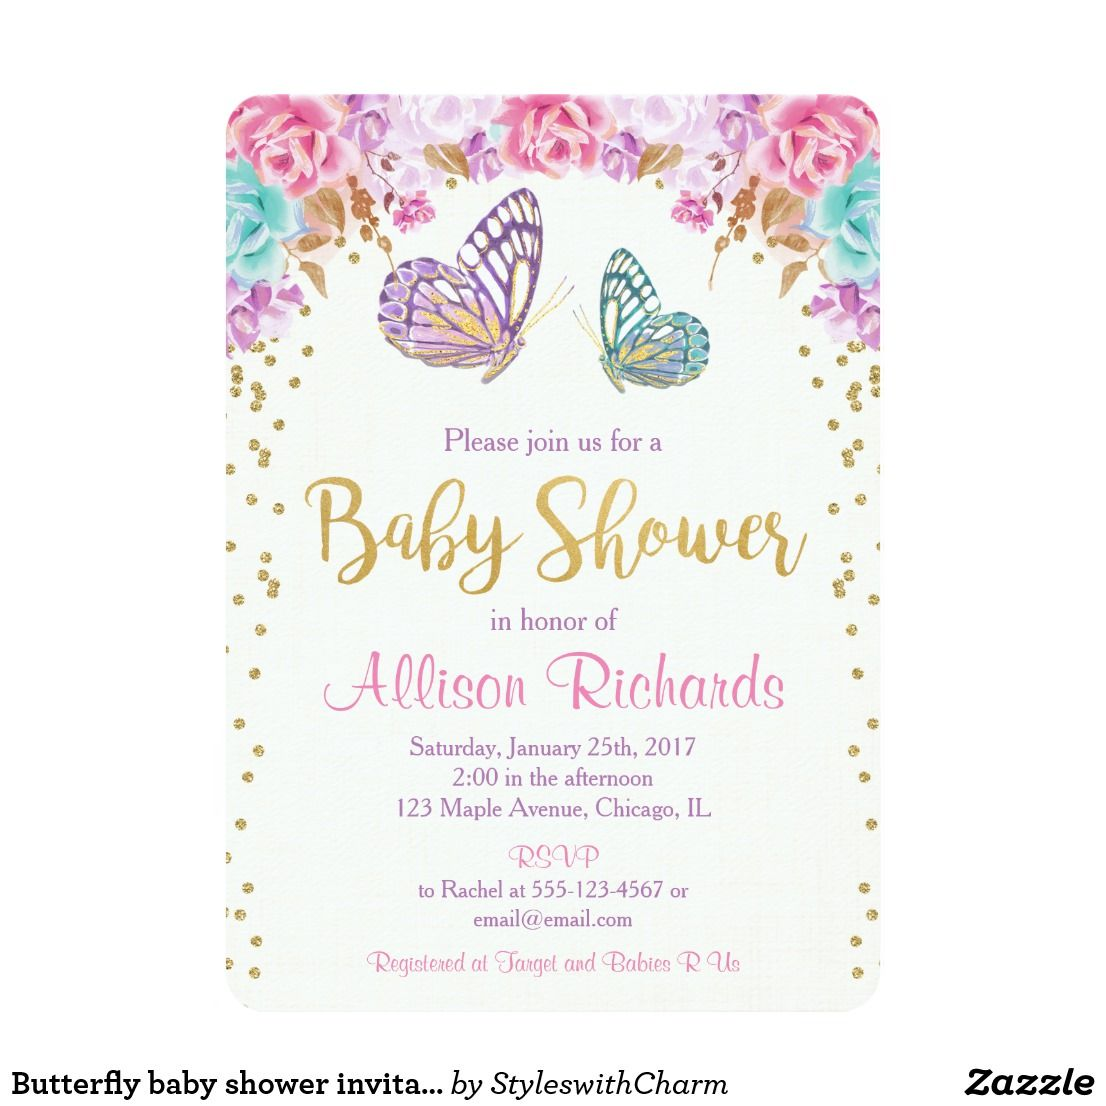 Butterfly baby shower invitation pink purple gold card   Baby Shower ...